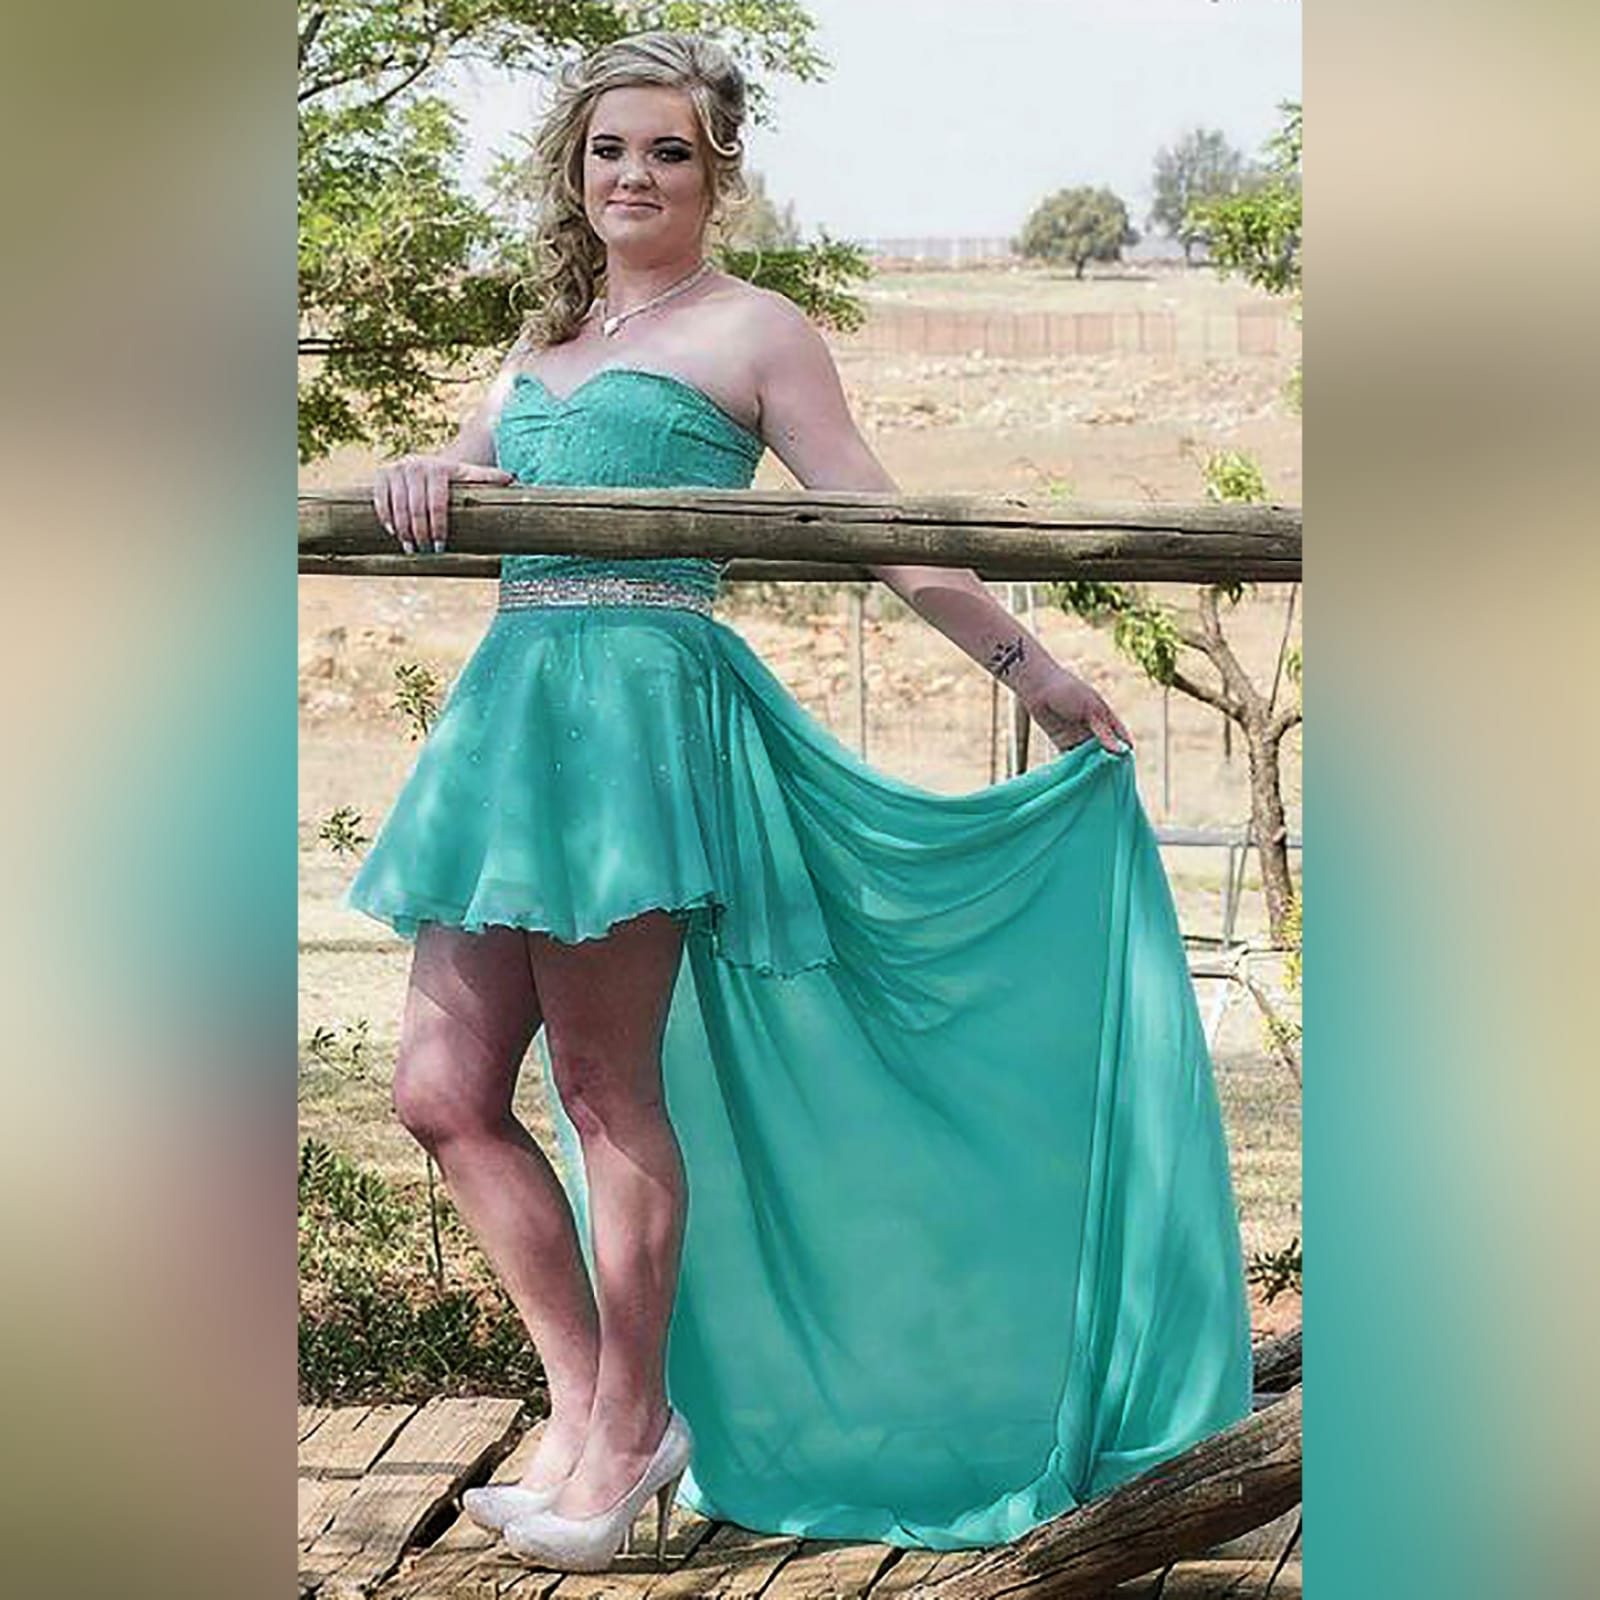 Turquoise 2 piece high low prom dress 1 turquoise 2 piece high low prom dress. Boobtube short dress with a sweetheart neckline and side tummy opening, lace-up back with bodice beaded in silver. With a detachable chiffon train creating a high low effect, with a wide silver belt.